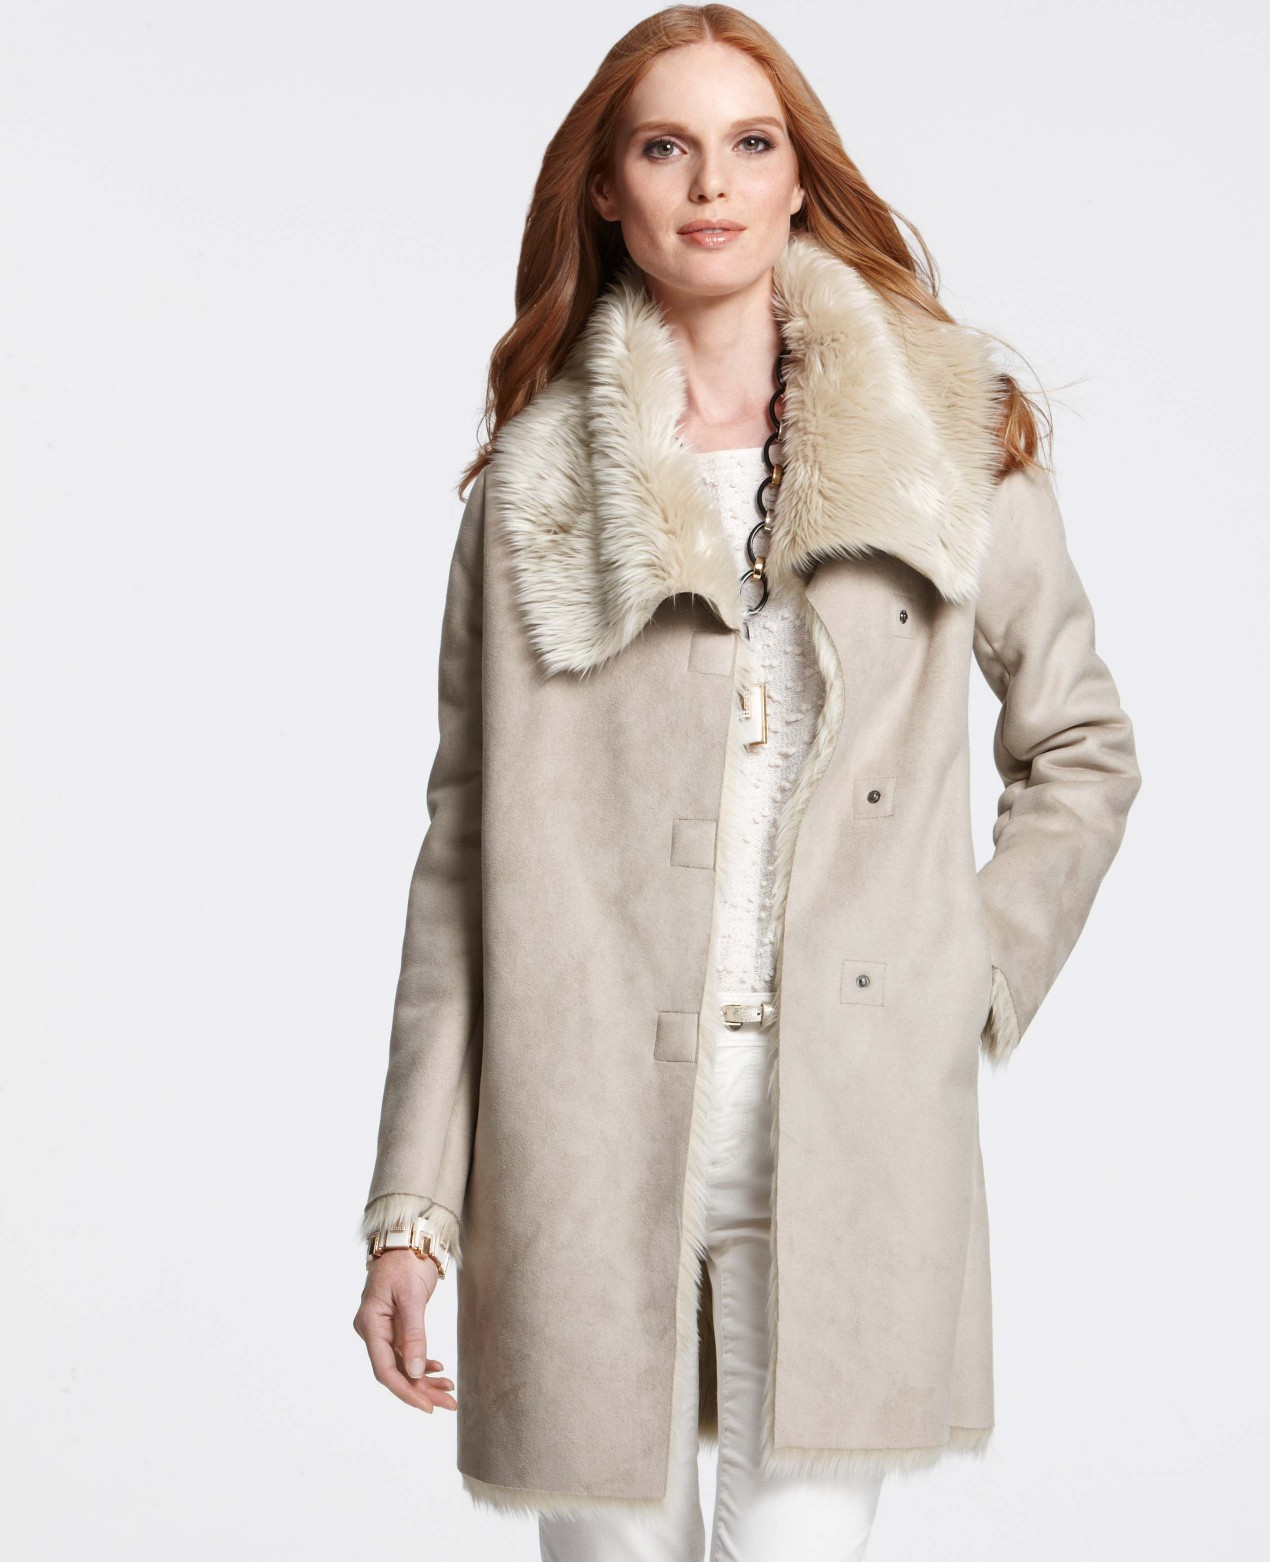 Ann taylor Petite Faux Shearling Coat in Natural | Lyst